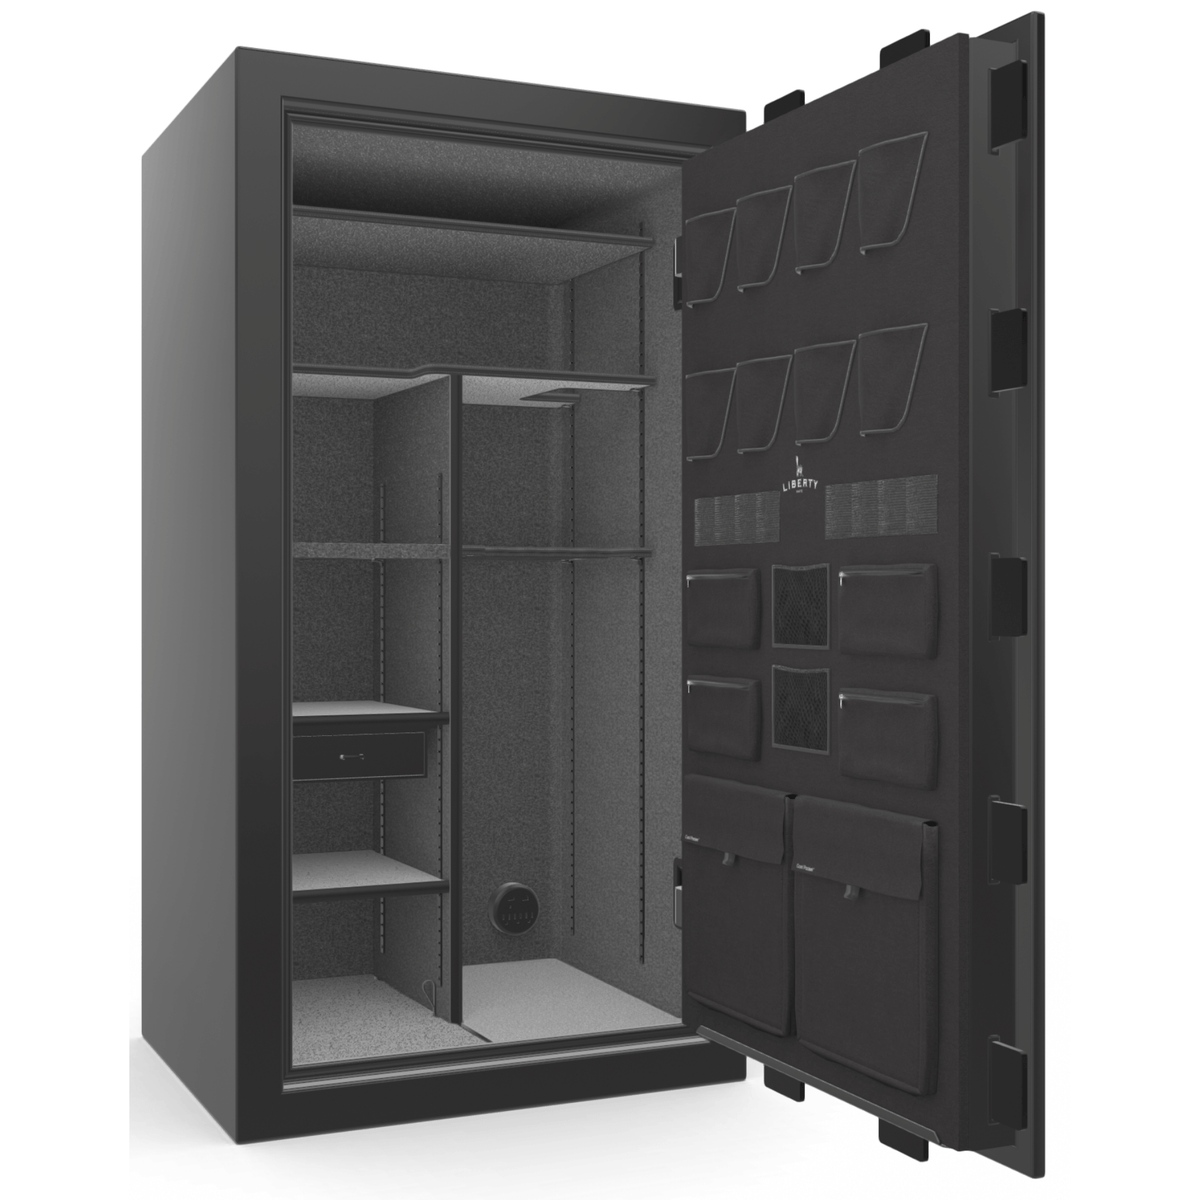 "Franklin | 40 | Level 4 Security | 75 Minute Fire Protection | Black Gloss | Chrome Mechanical Lock | 66.5""(H) x 36""(W) x 32""(D)"